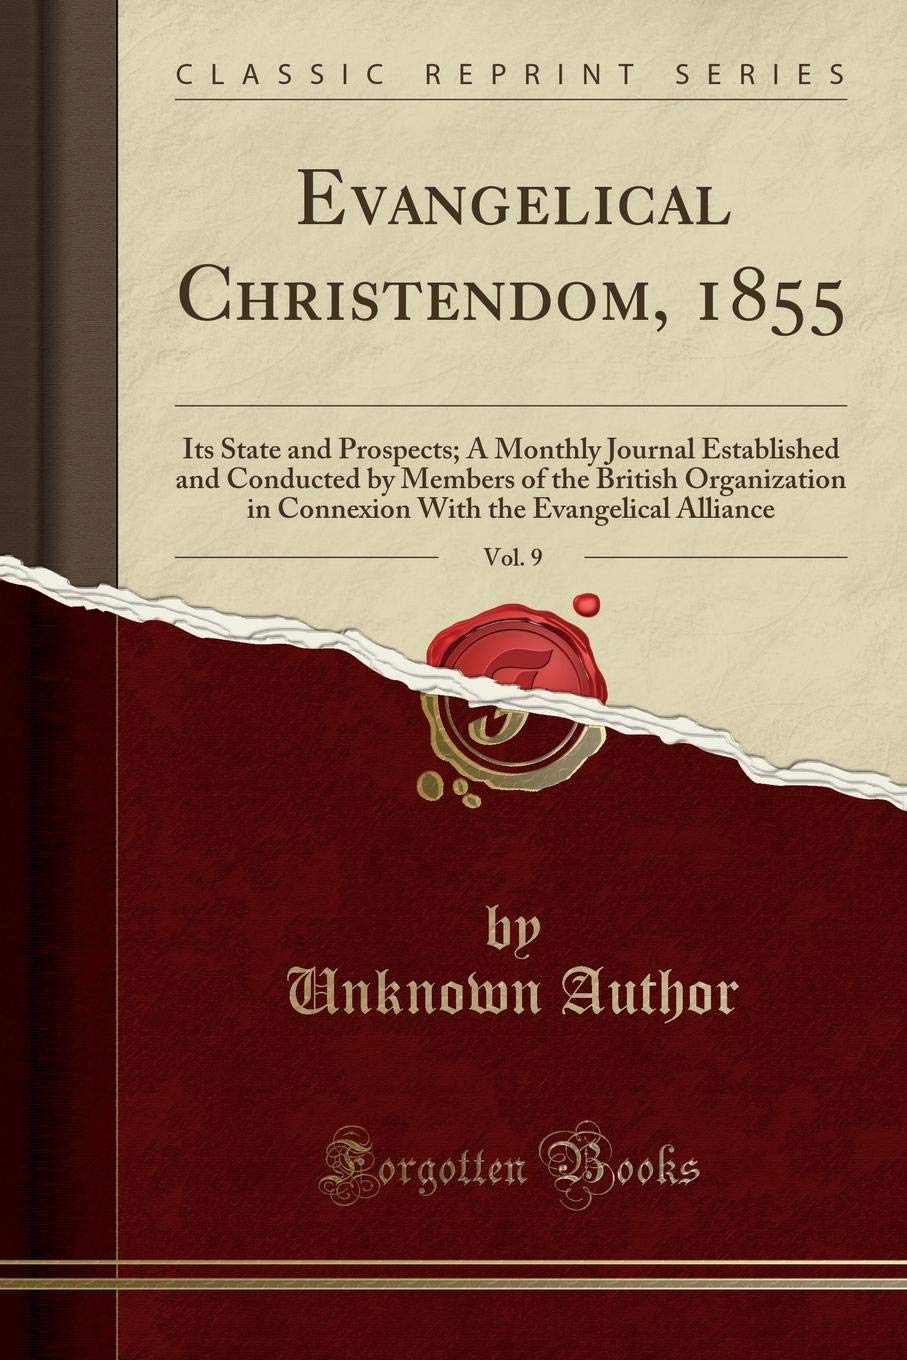 Evangelical Christendom, 1855, Vol. 9: Its State and Prospects; A Monthly Journal Established and Conducted by Members of the British Organization in ... the Evangelical Alliance (Classic Reprint) pdf epub